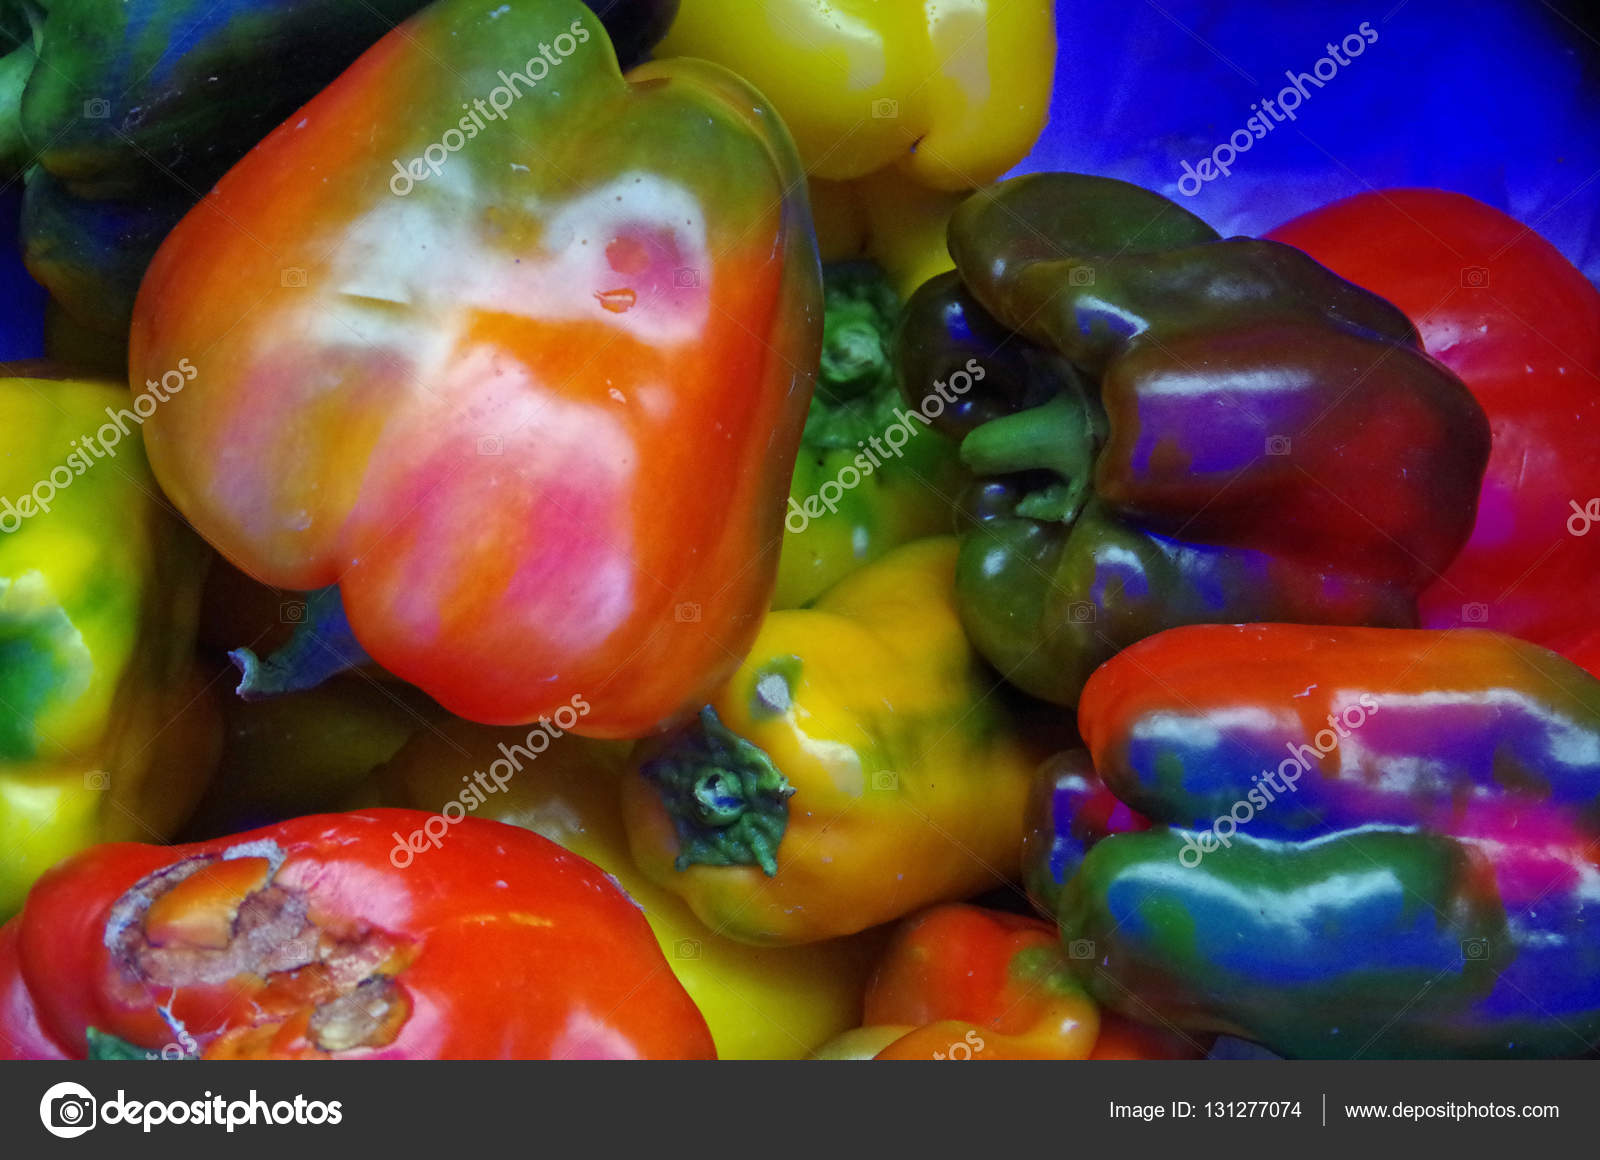 Rainbow colored bell peppers ⬇ Stock Photo, Image by © pellegrino13  #131277074